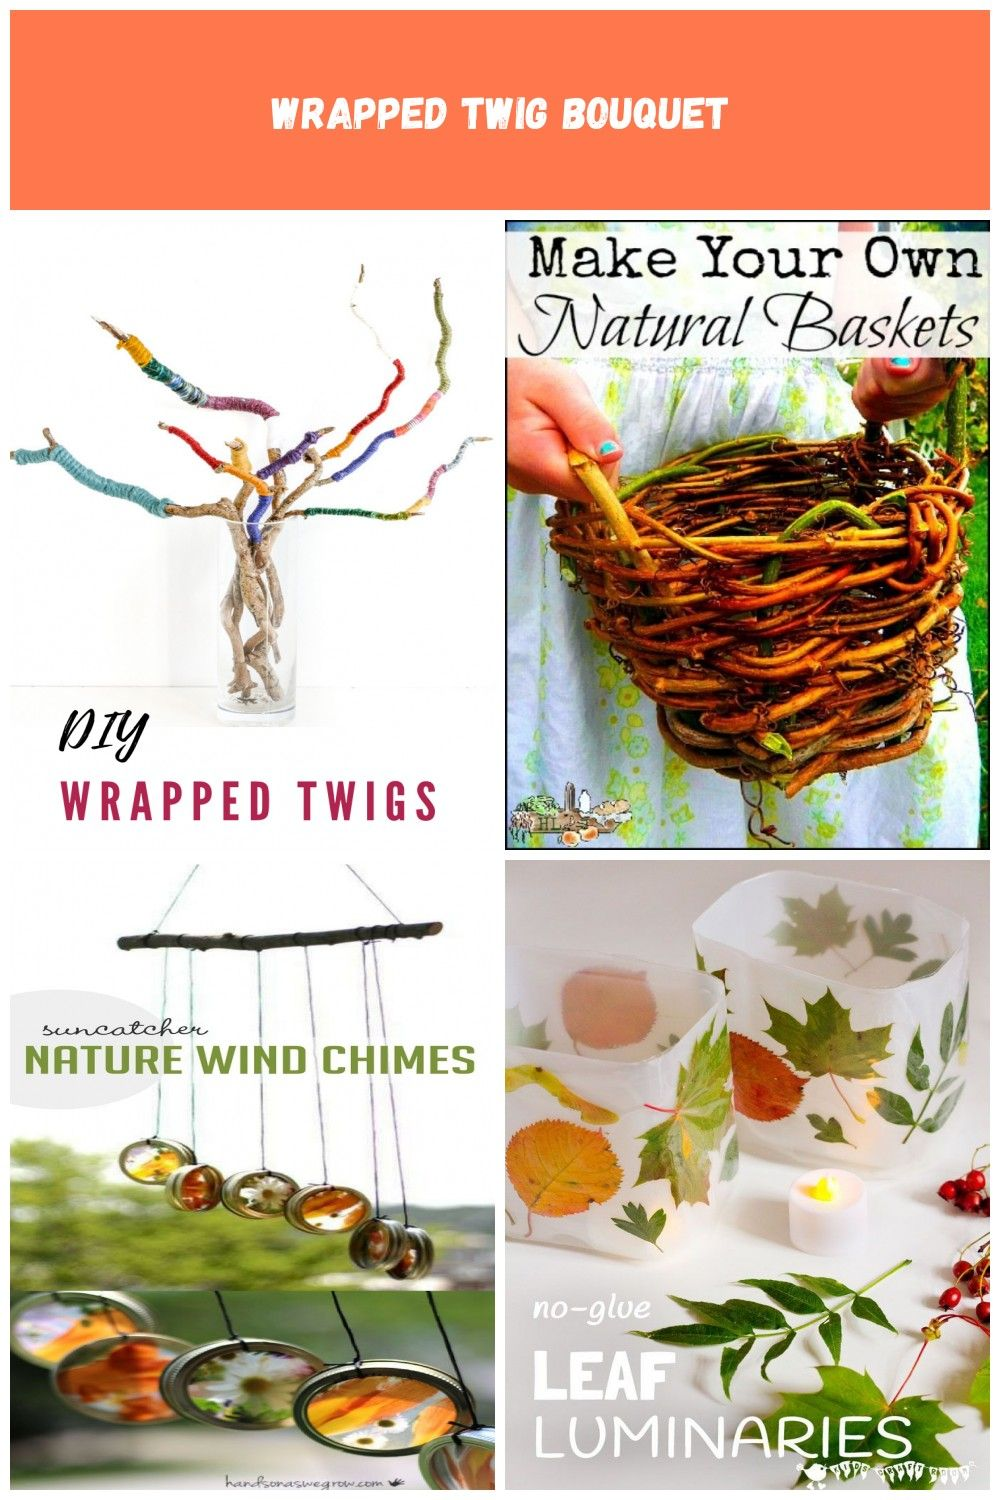 twig crafts - bright and colourful twig bouquet, wrapped twigs with yarn - use up your odds and ends of yarn with this scrap yarn project nature crafts Wrapped twig bouquet #twigcrafts